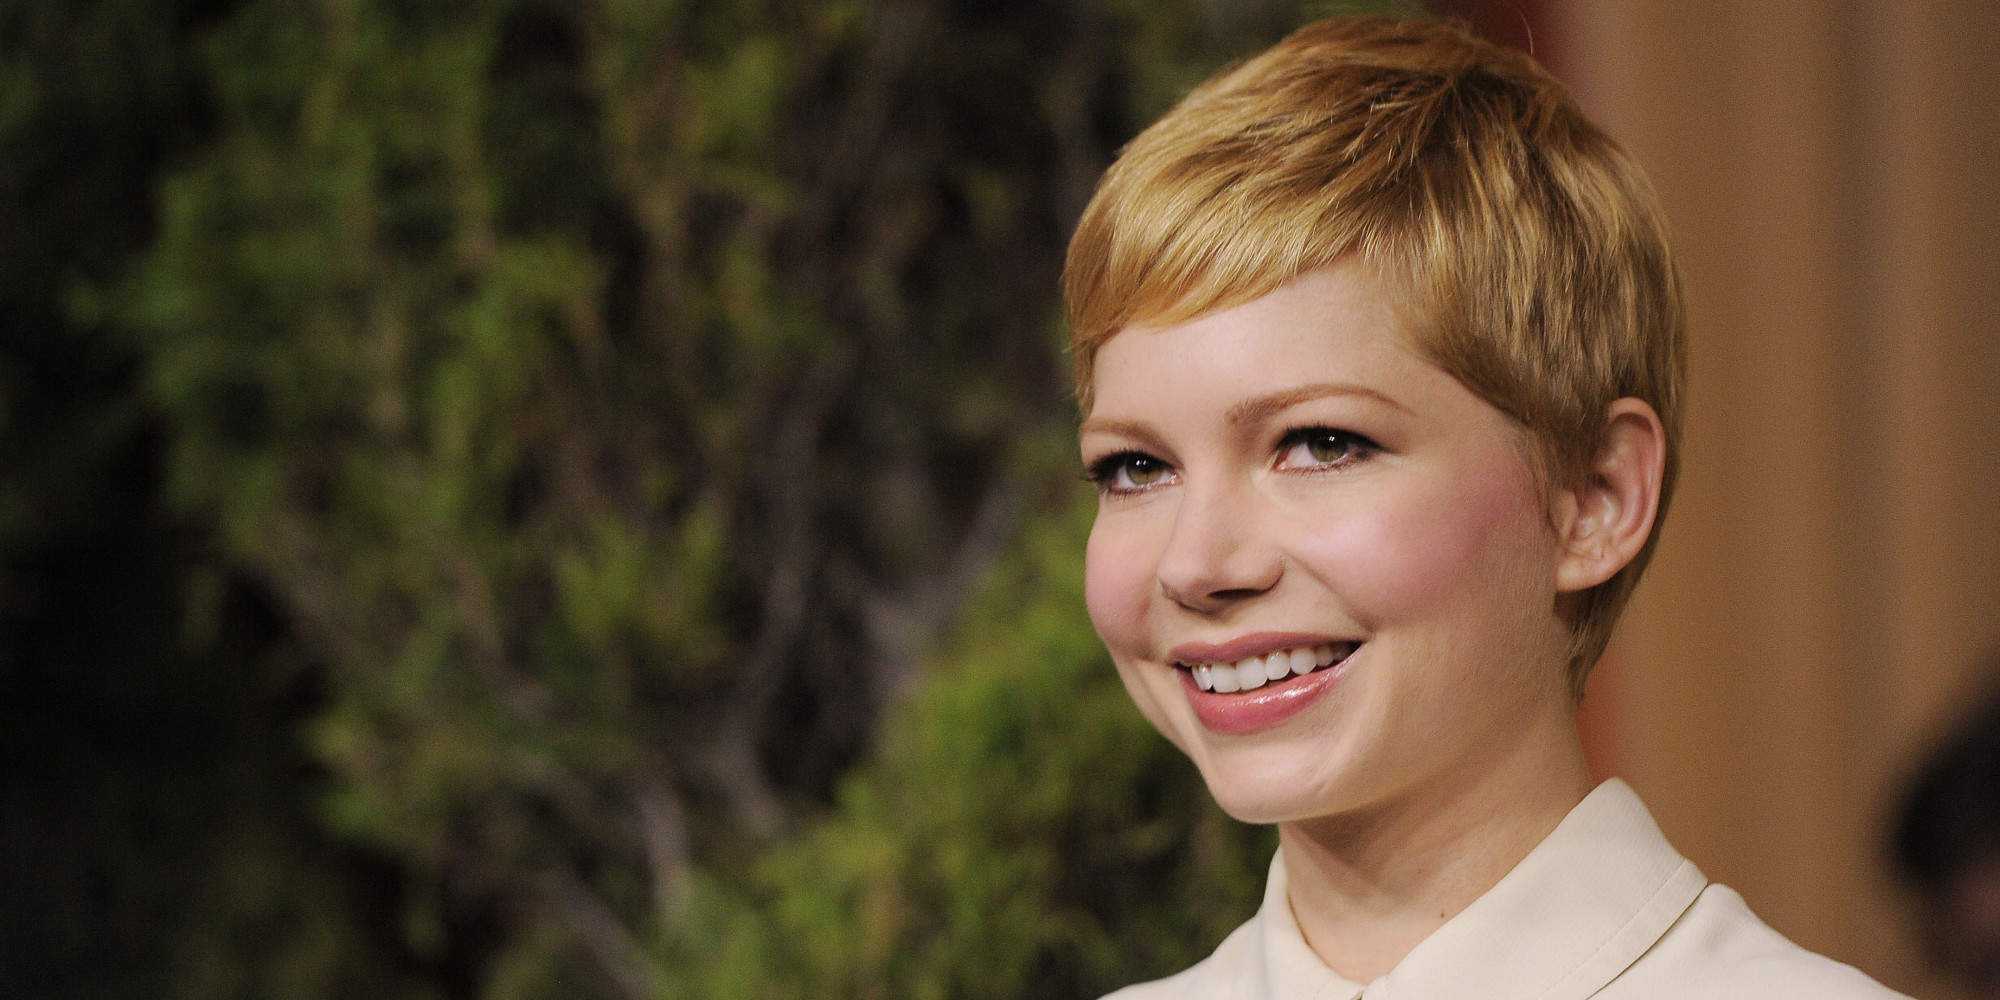 michelle williams short hair is a thing of the past